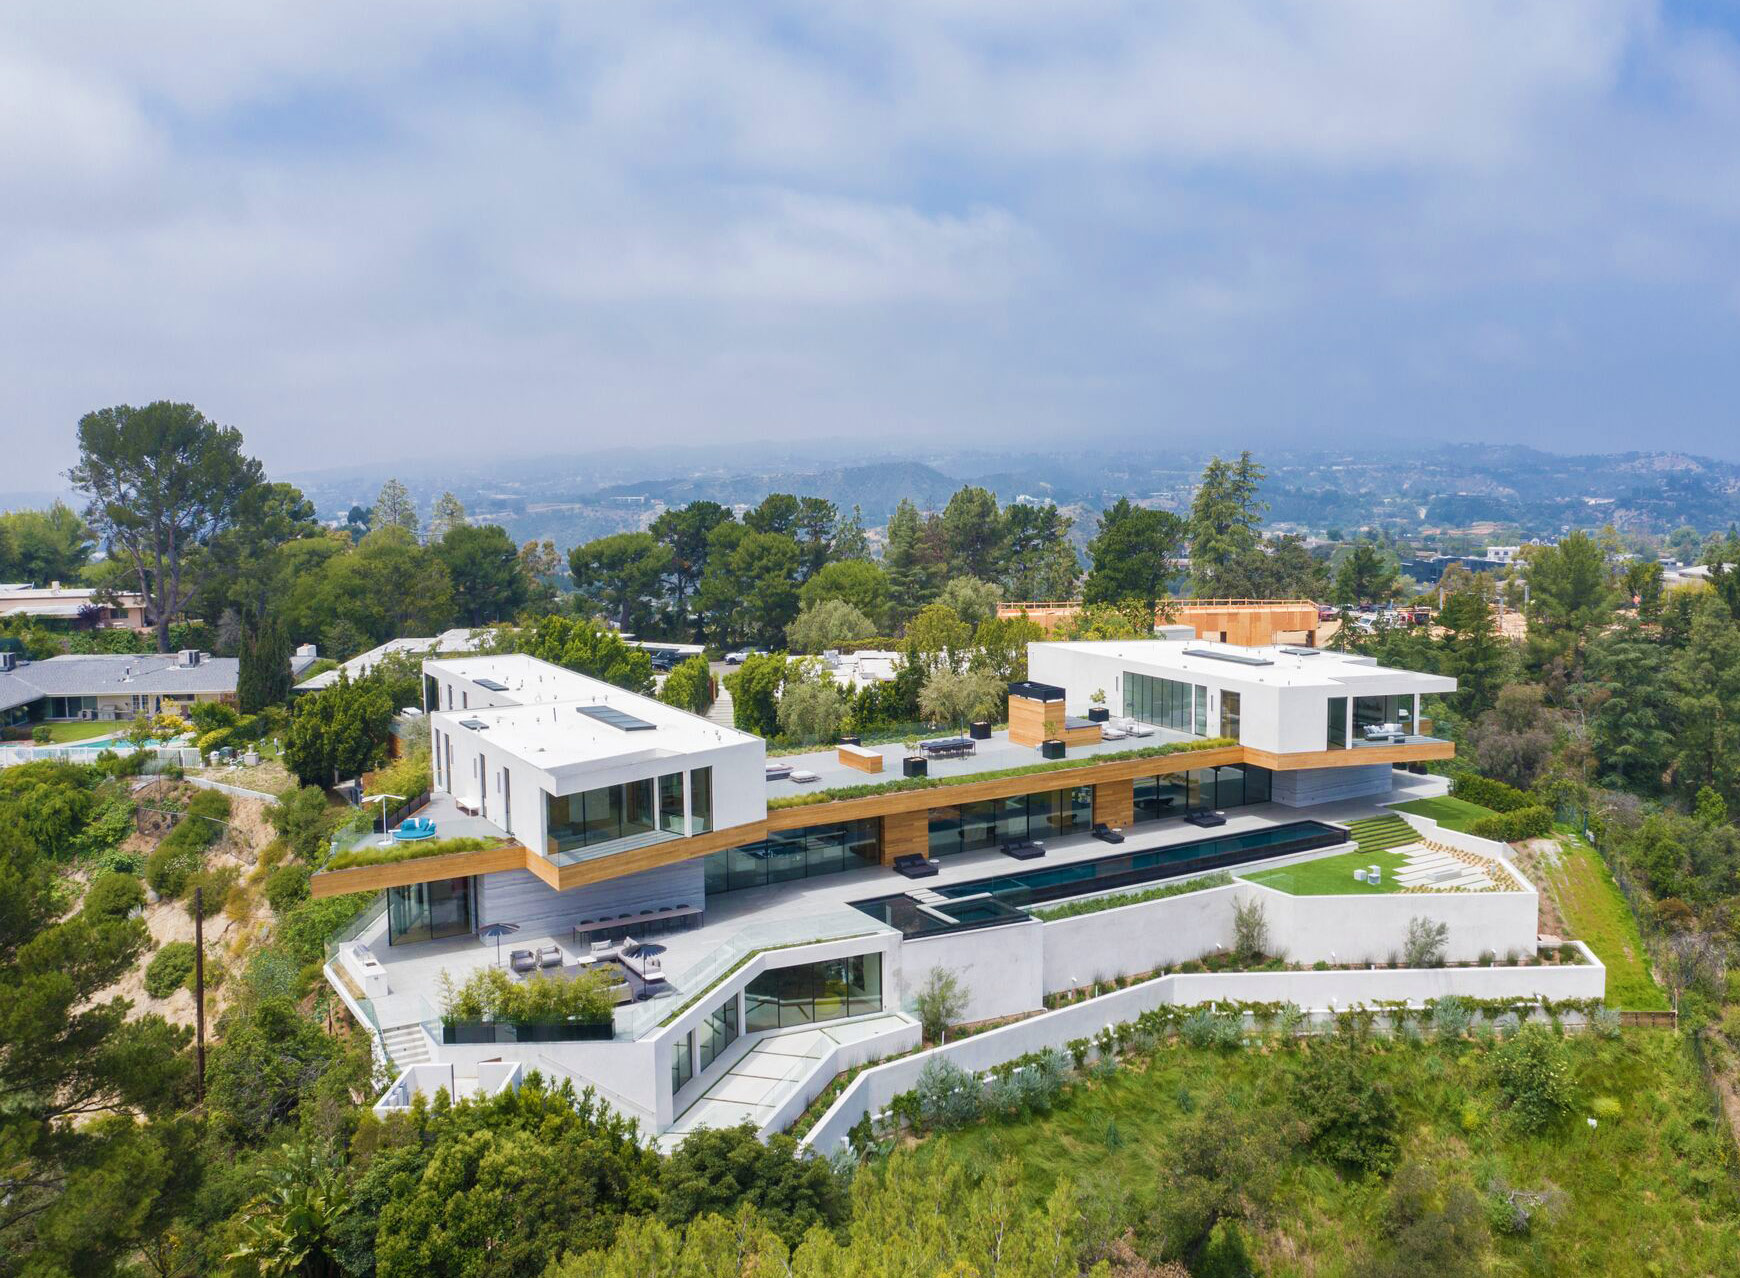 The Rise of the Multimillion-Dollar Spec Home in LA